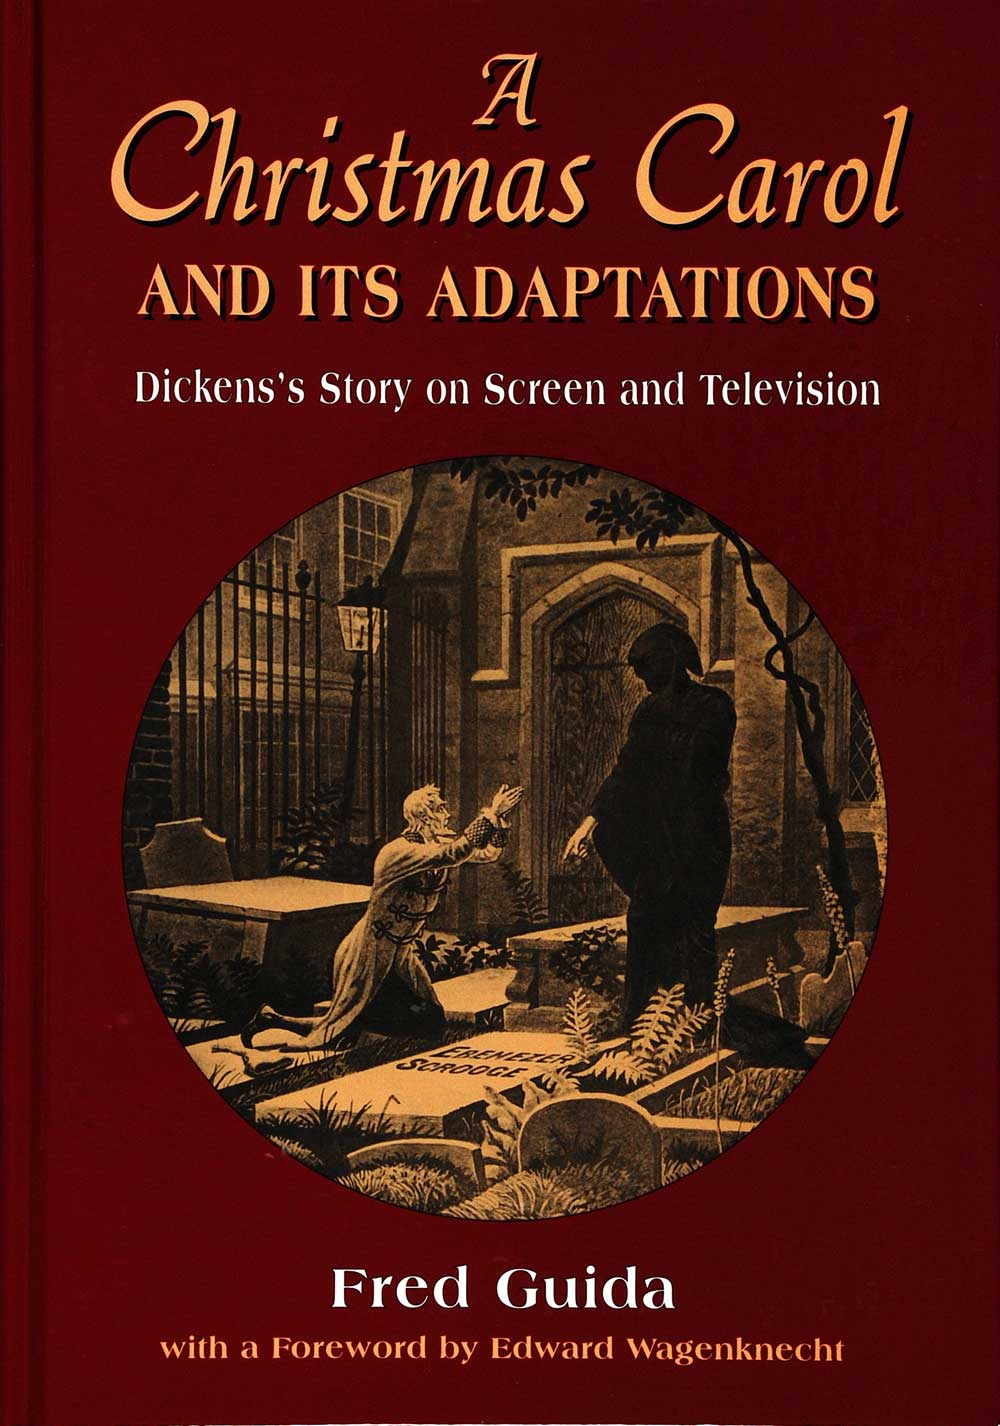 Fred Guida. A Christmas Carol and Its Adaptations: A Critical Examination of Dickens Story and Its Productions on Screen and Television. London: McFarland & Company, 1999